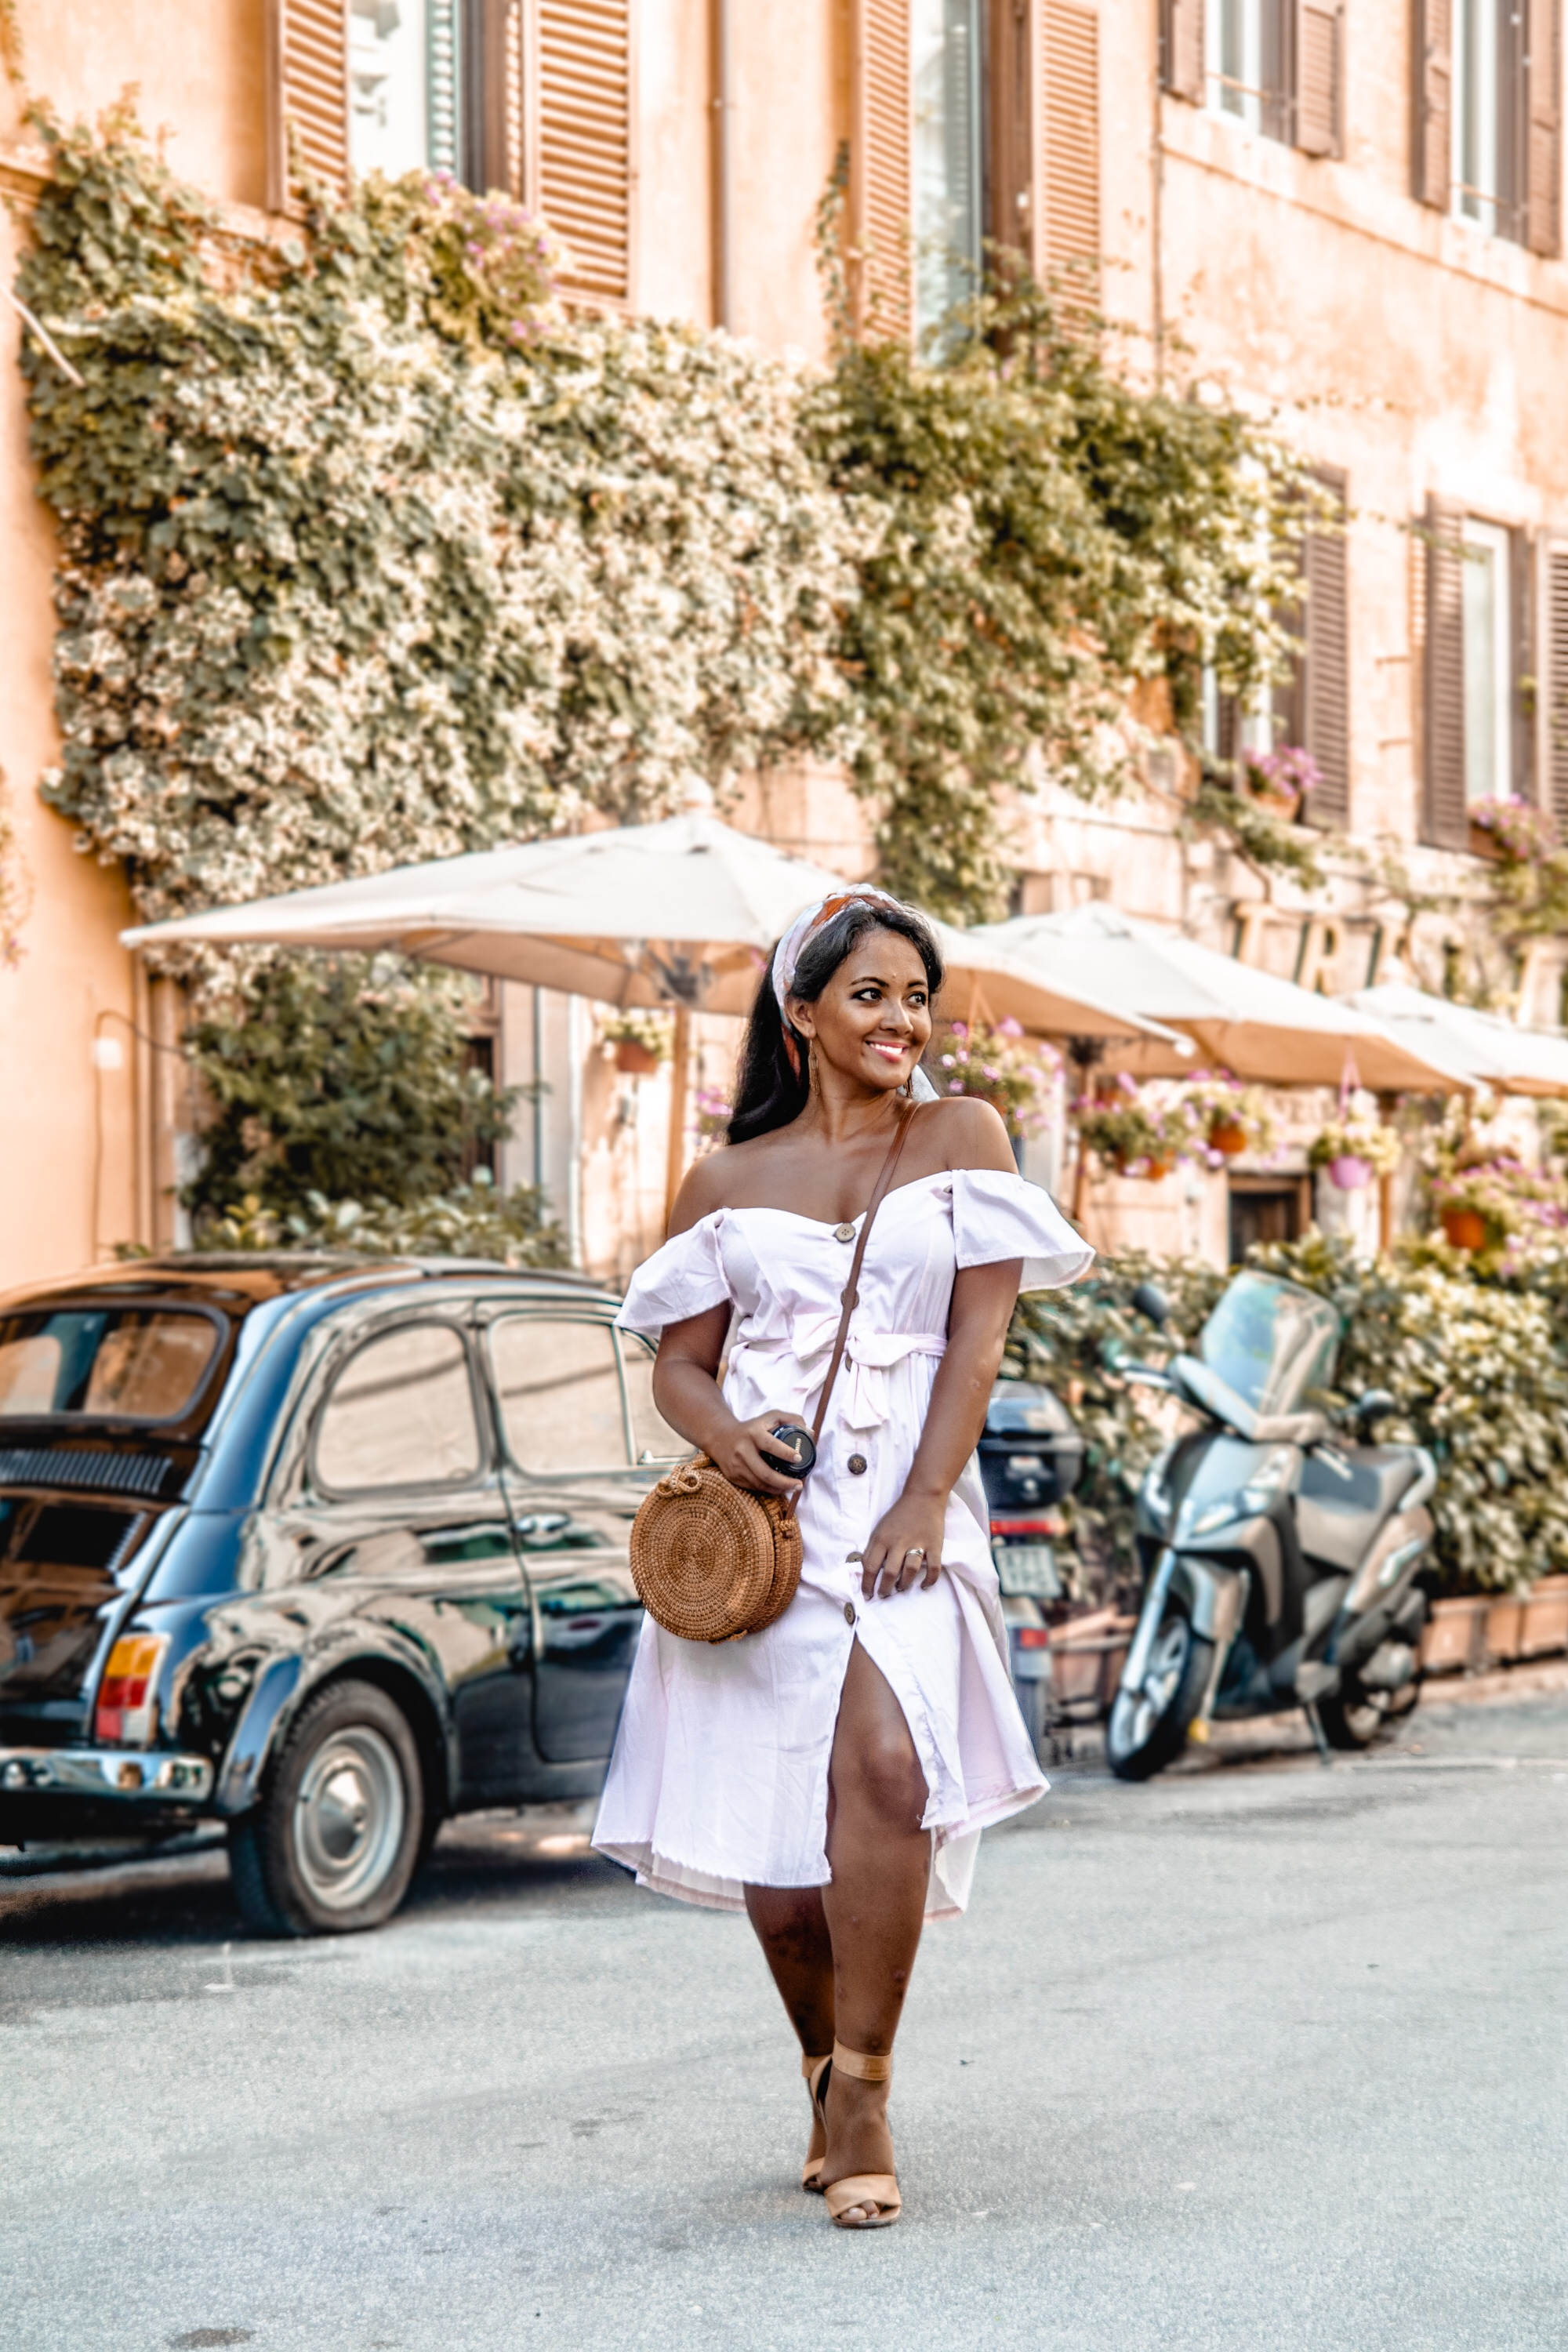 Marjolyn Lago Marj How To Wear Off Shoulder Dress Light Blush Pink Button Down Dress Rattan Straw Basket Bag Flat Sandal Headwrap Paris Chic Style Fashion Lookbook Street Style ootd Outfit Of The Day 4